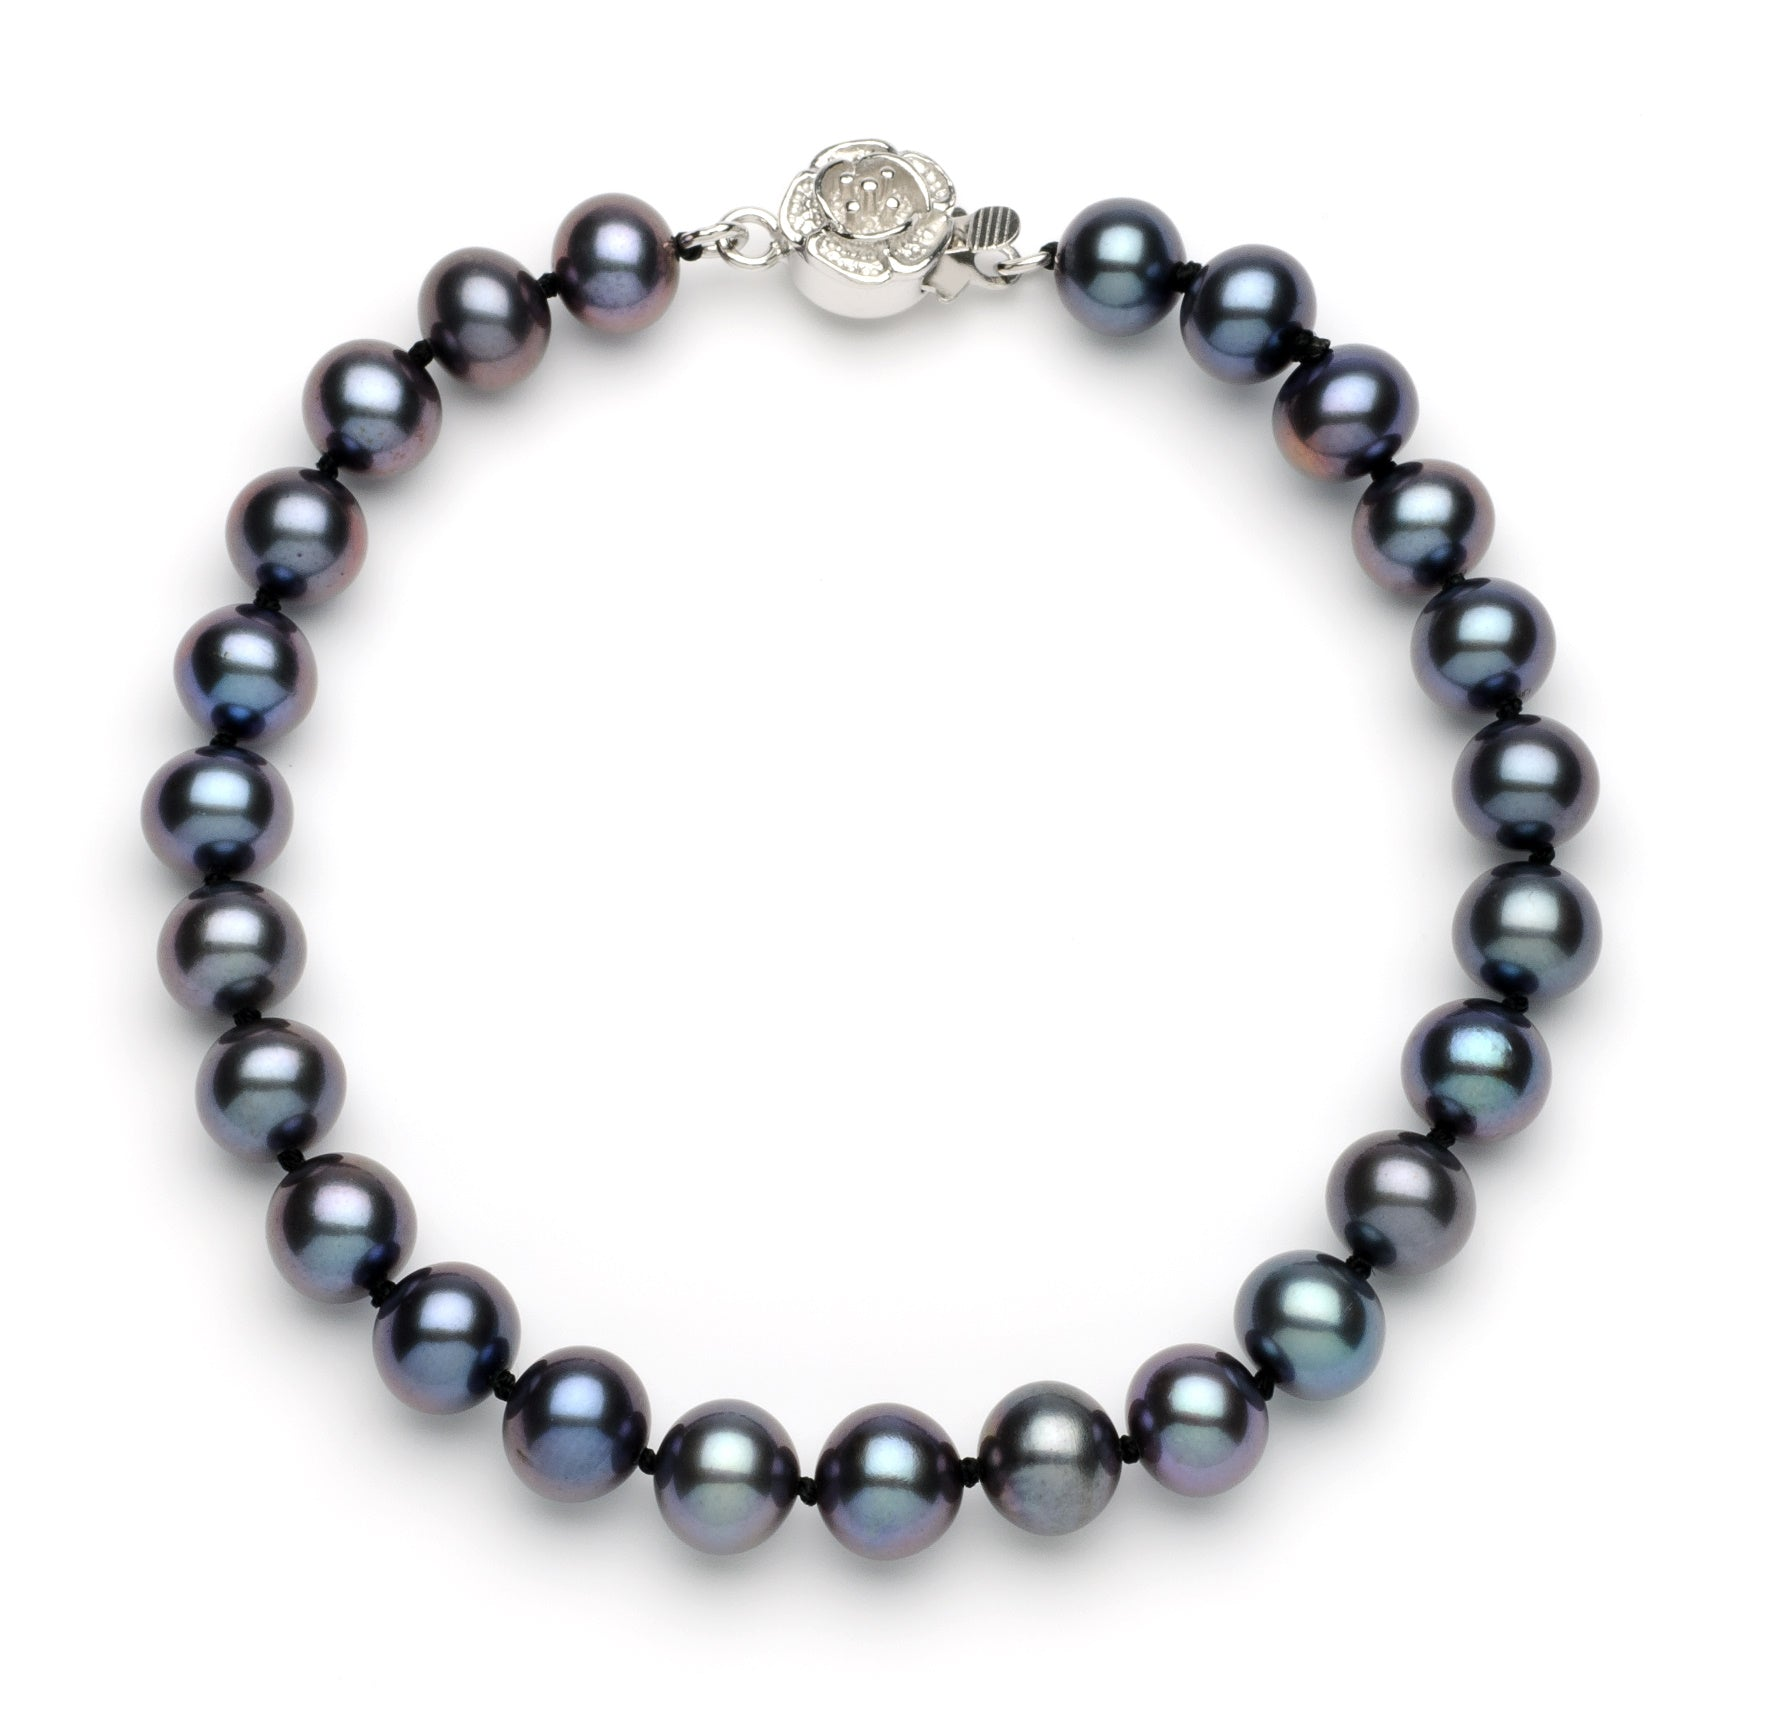 Necklace/Bracelet Set 7.0-8.0 mm Black Freshwater Pearls